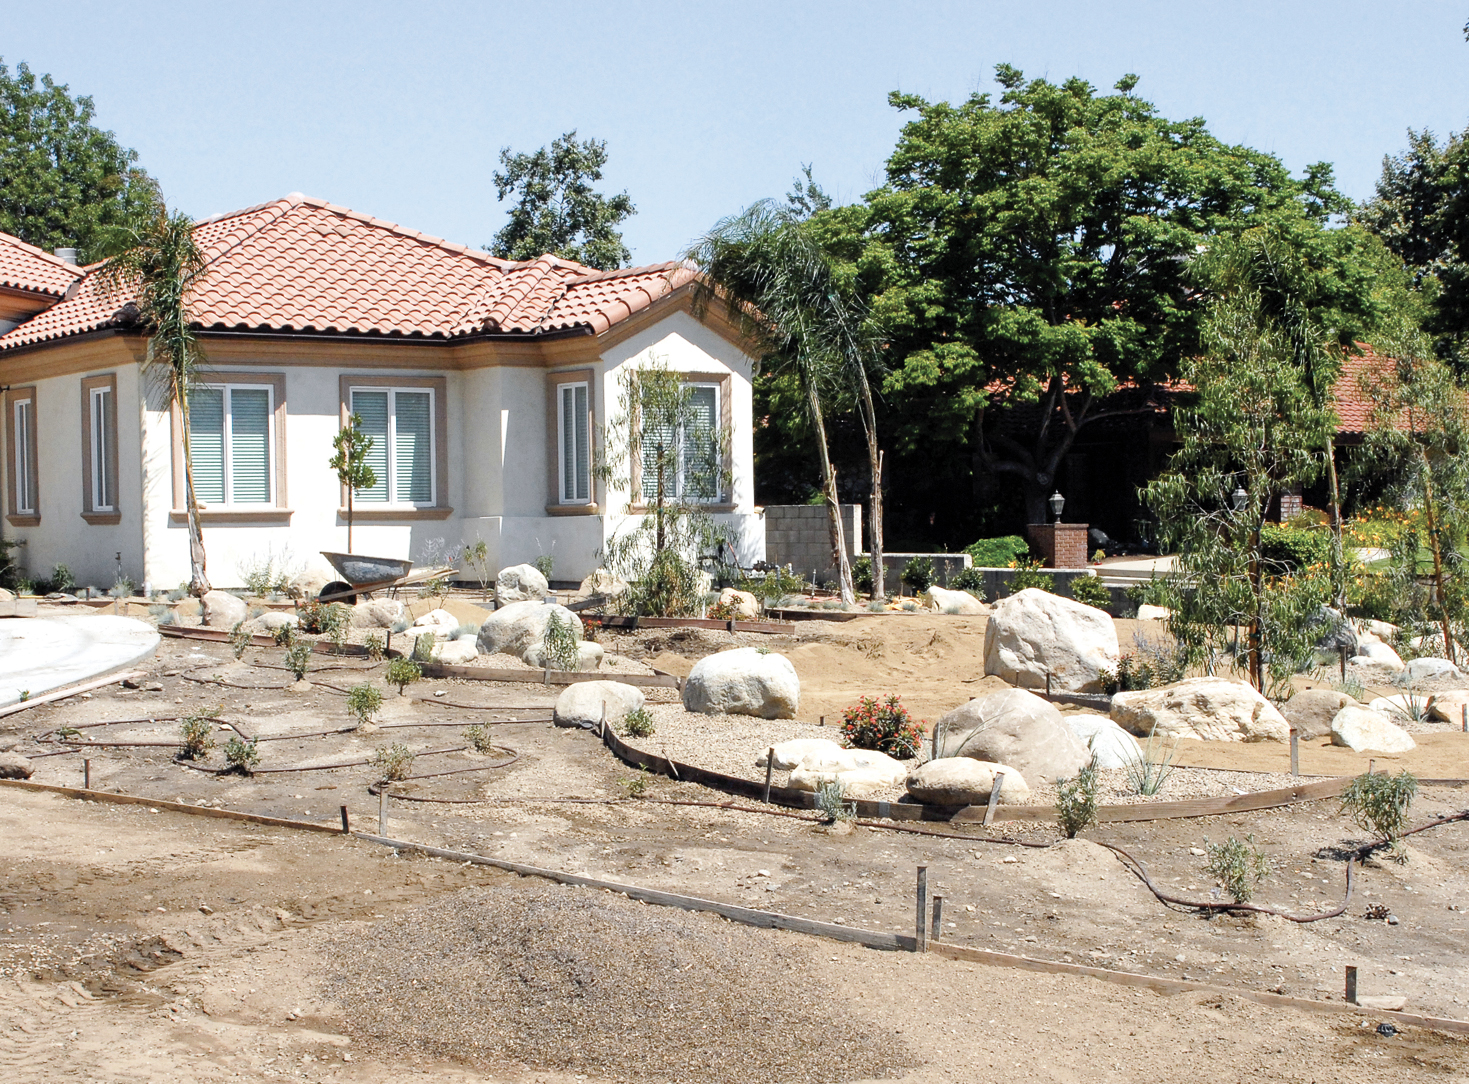 Continue irrigation work, place boulders and trees. Be sure to partially bury the boulders so their placement looks natural and not plopped in place.